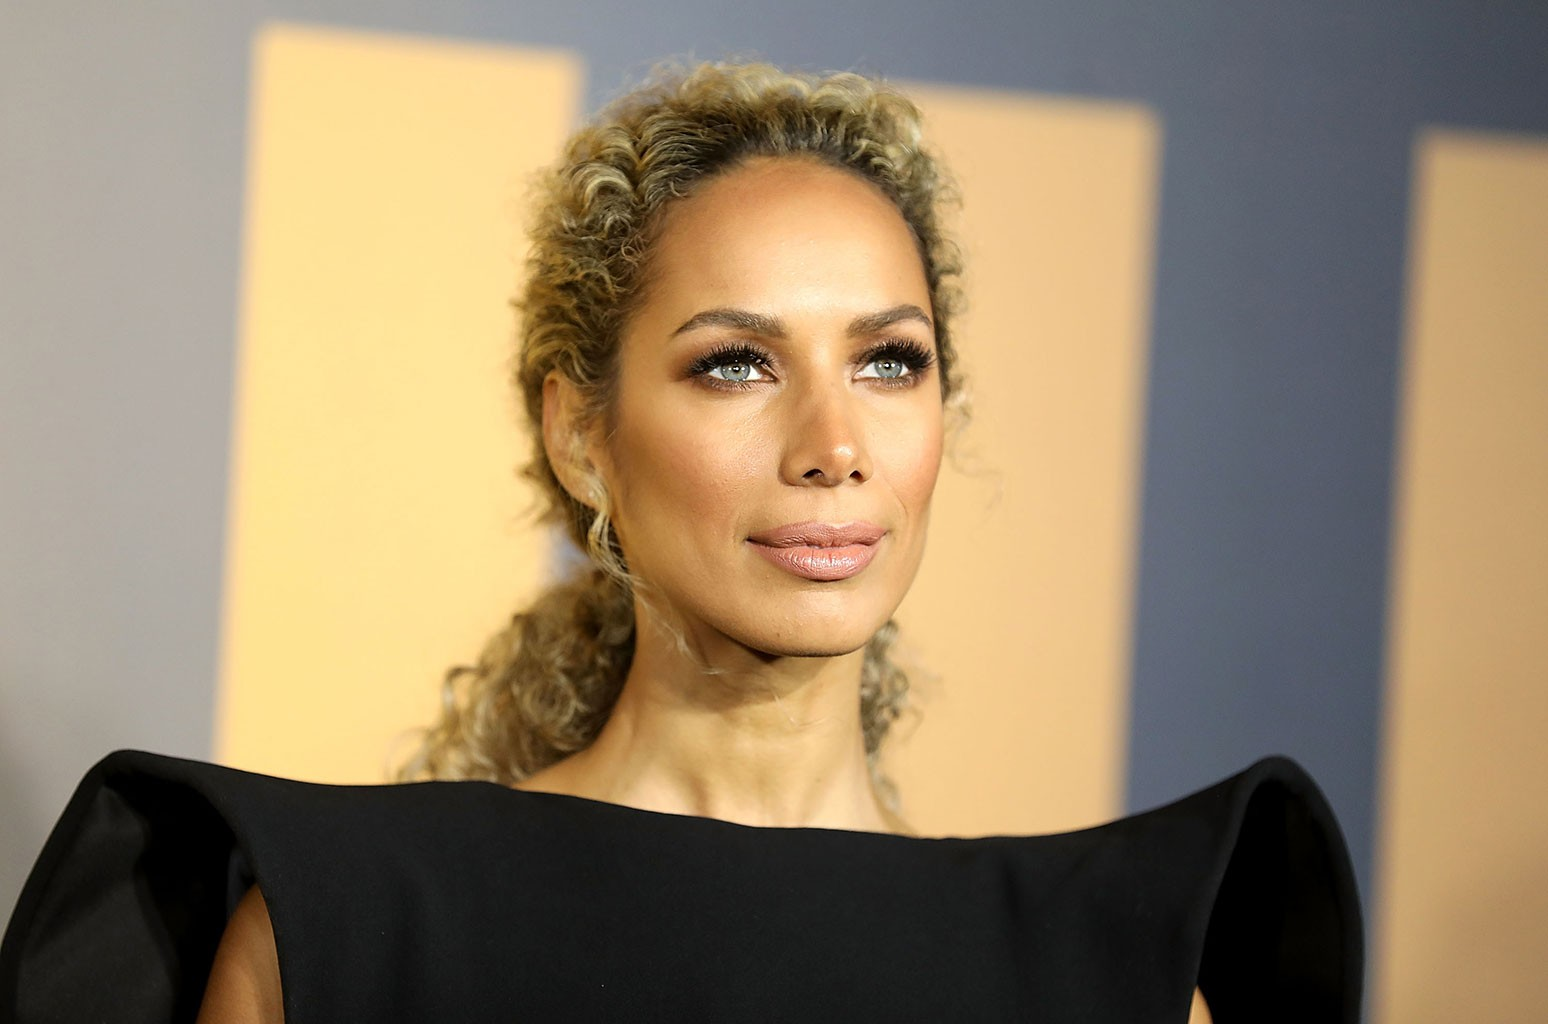 Leona Lewis Recalls Being 'Deeply Hurt' by Michael Costello After His Chrissy Teigen Bullying Claims